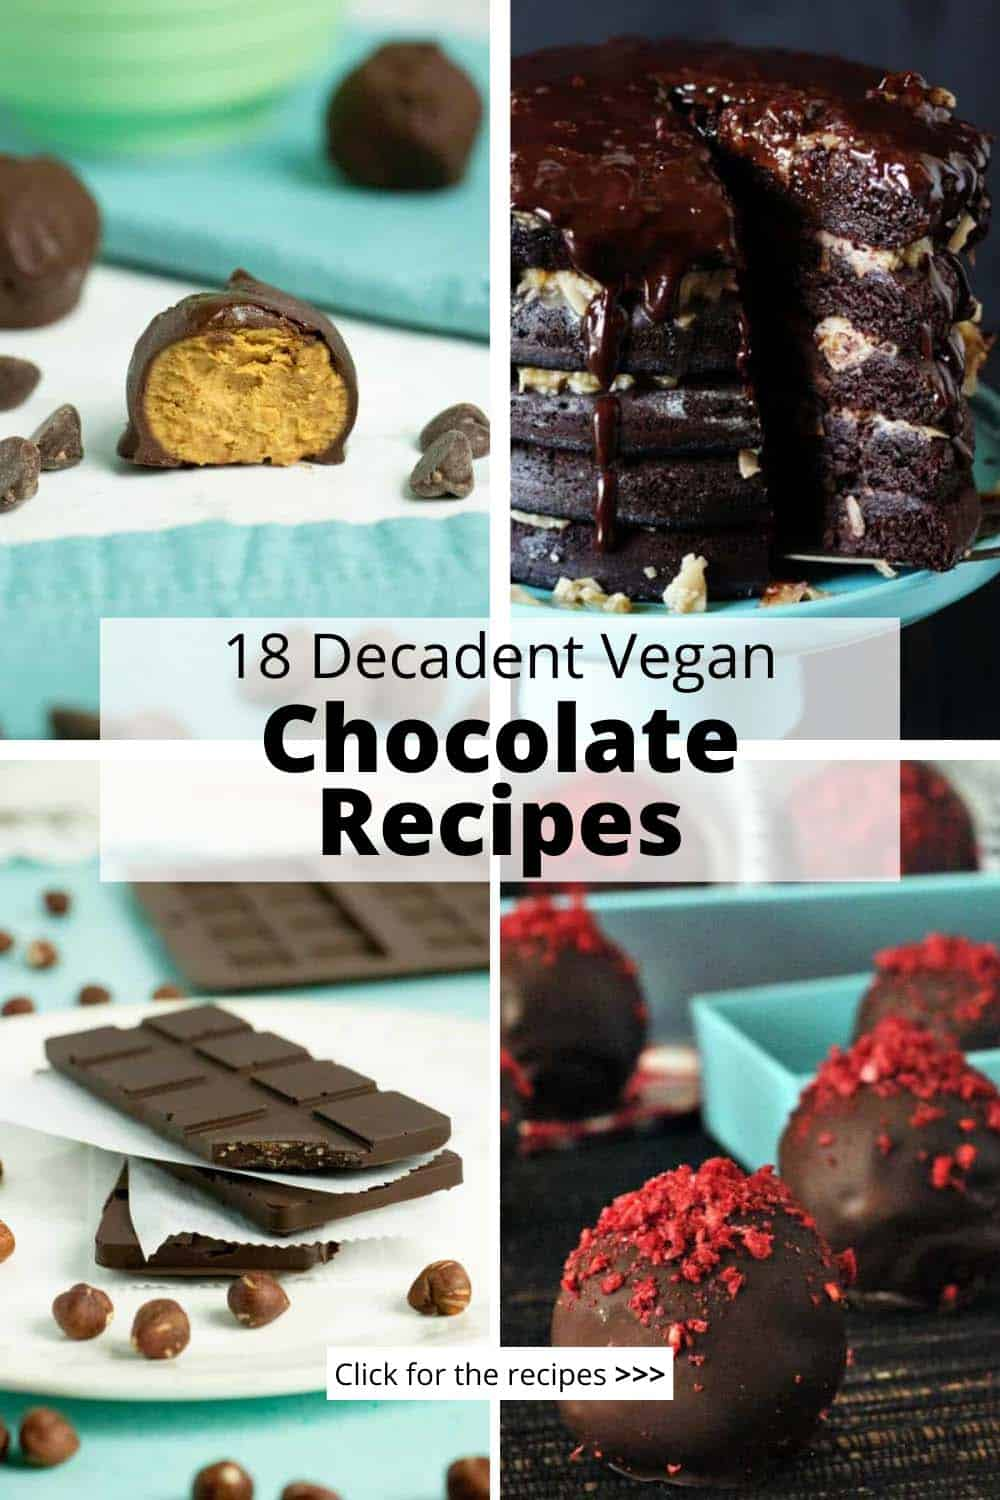 image collage of vegan chocolate recipes: peanut butter bites, cake, chocolate bar, truffles, text overlay